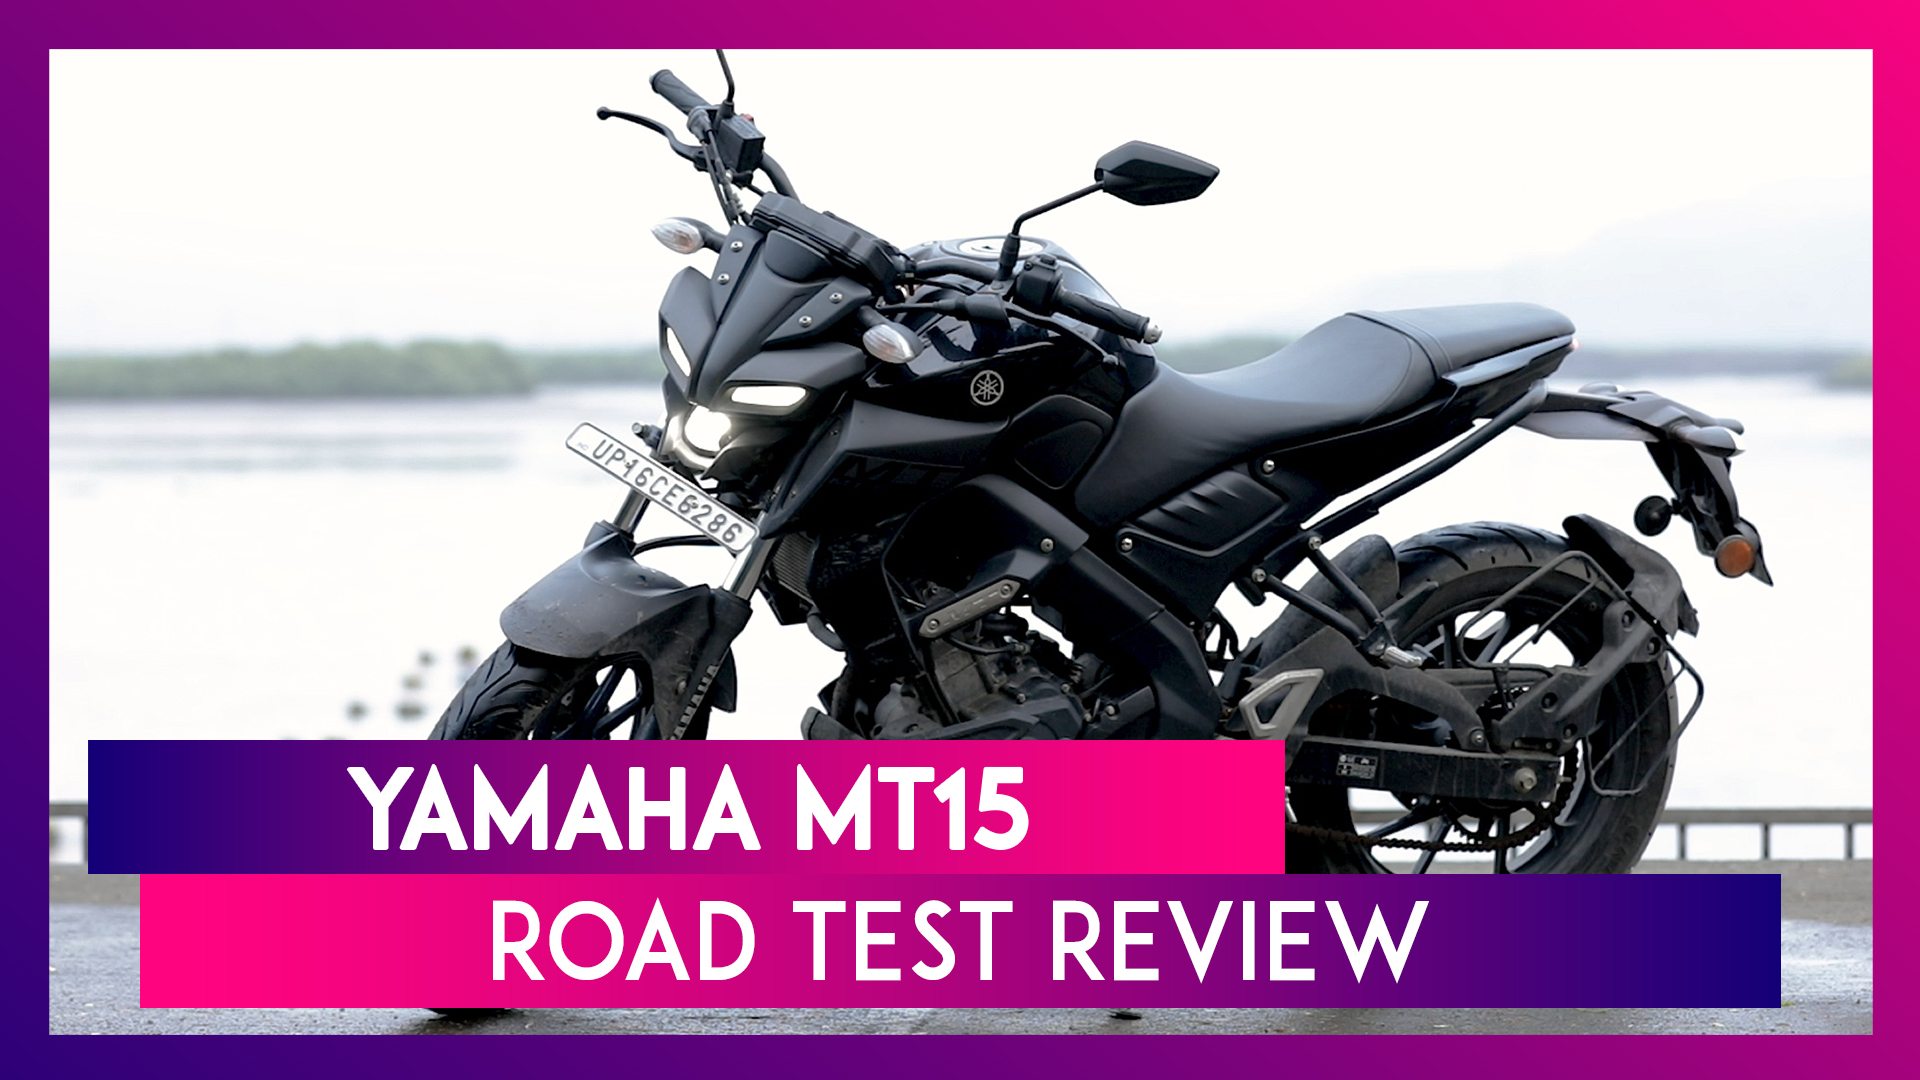 Yamaha MT15 Road Test Review | Performance, Mileage, Features & Specifications